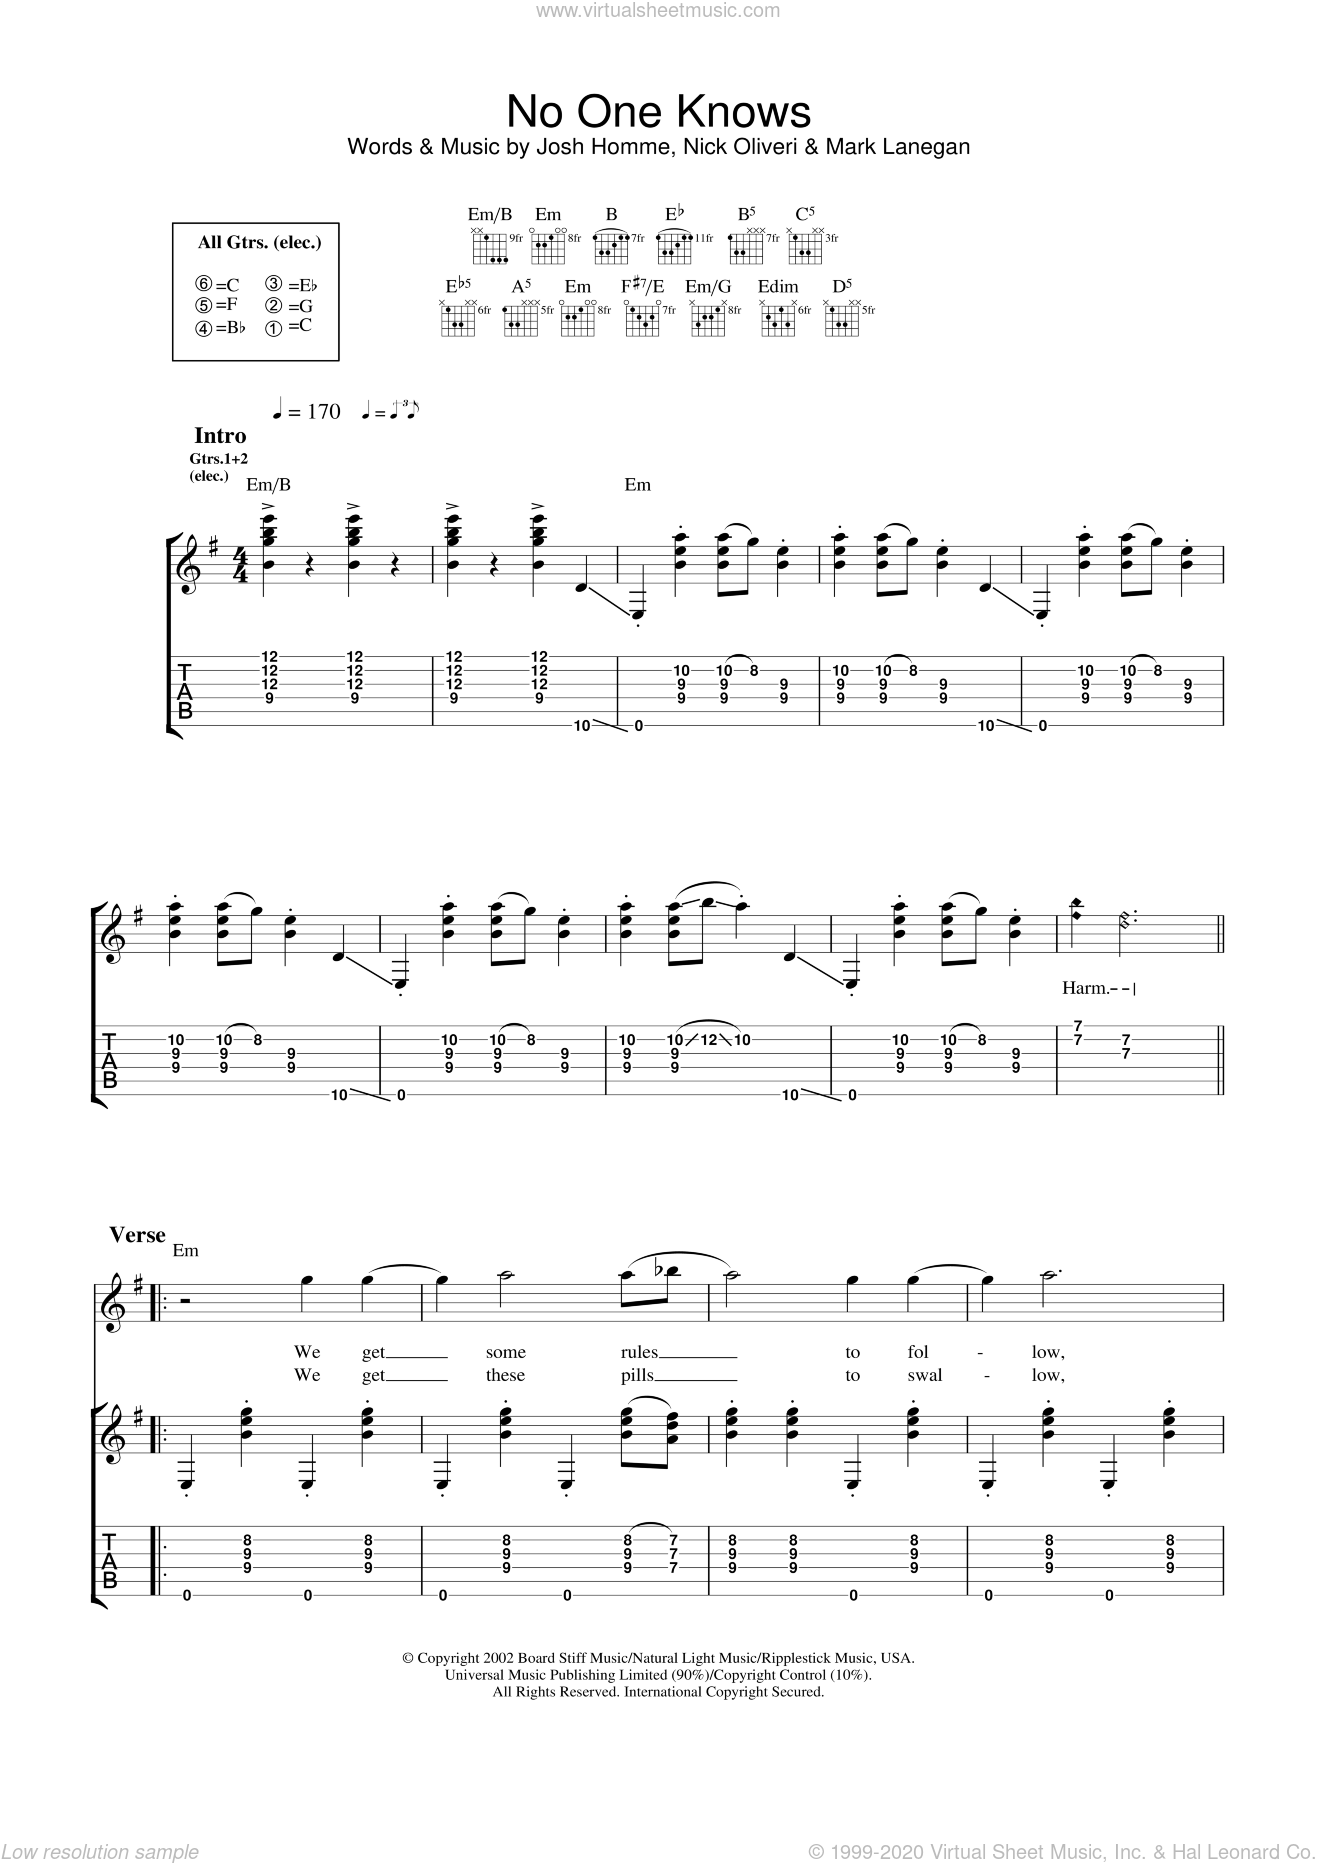 No One Knows sheet music for guitar (tablature) by Queens Of The Stone Age, Josh Homme, Mark Lanegan and Nick Oliveri, intermediate skill level